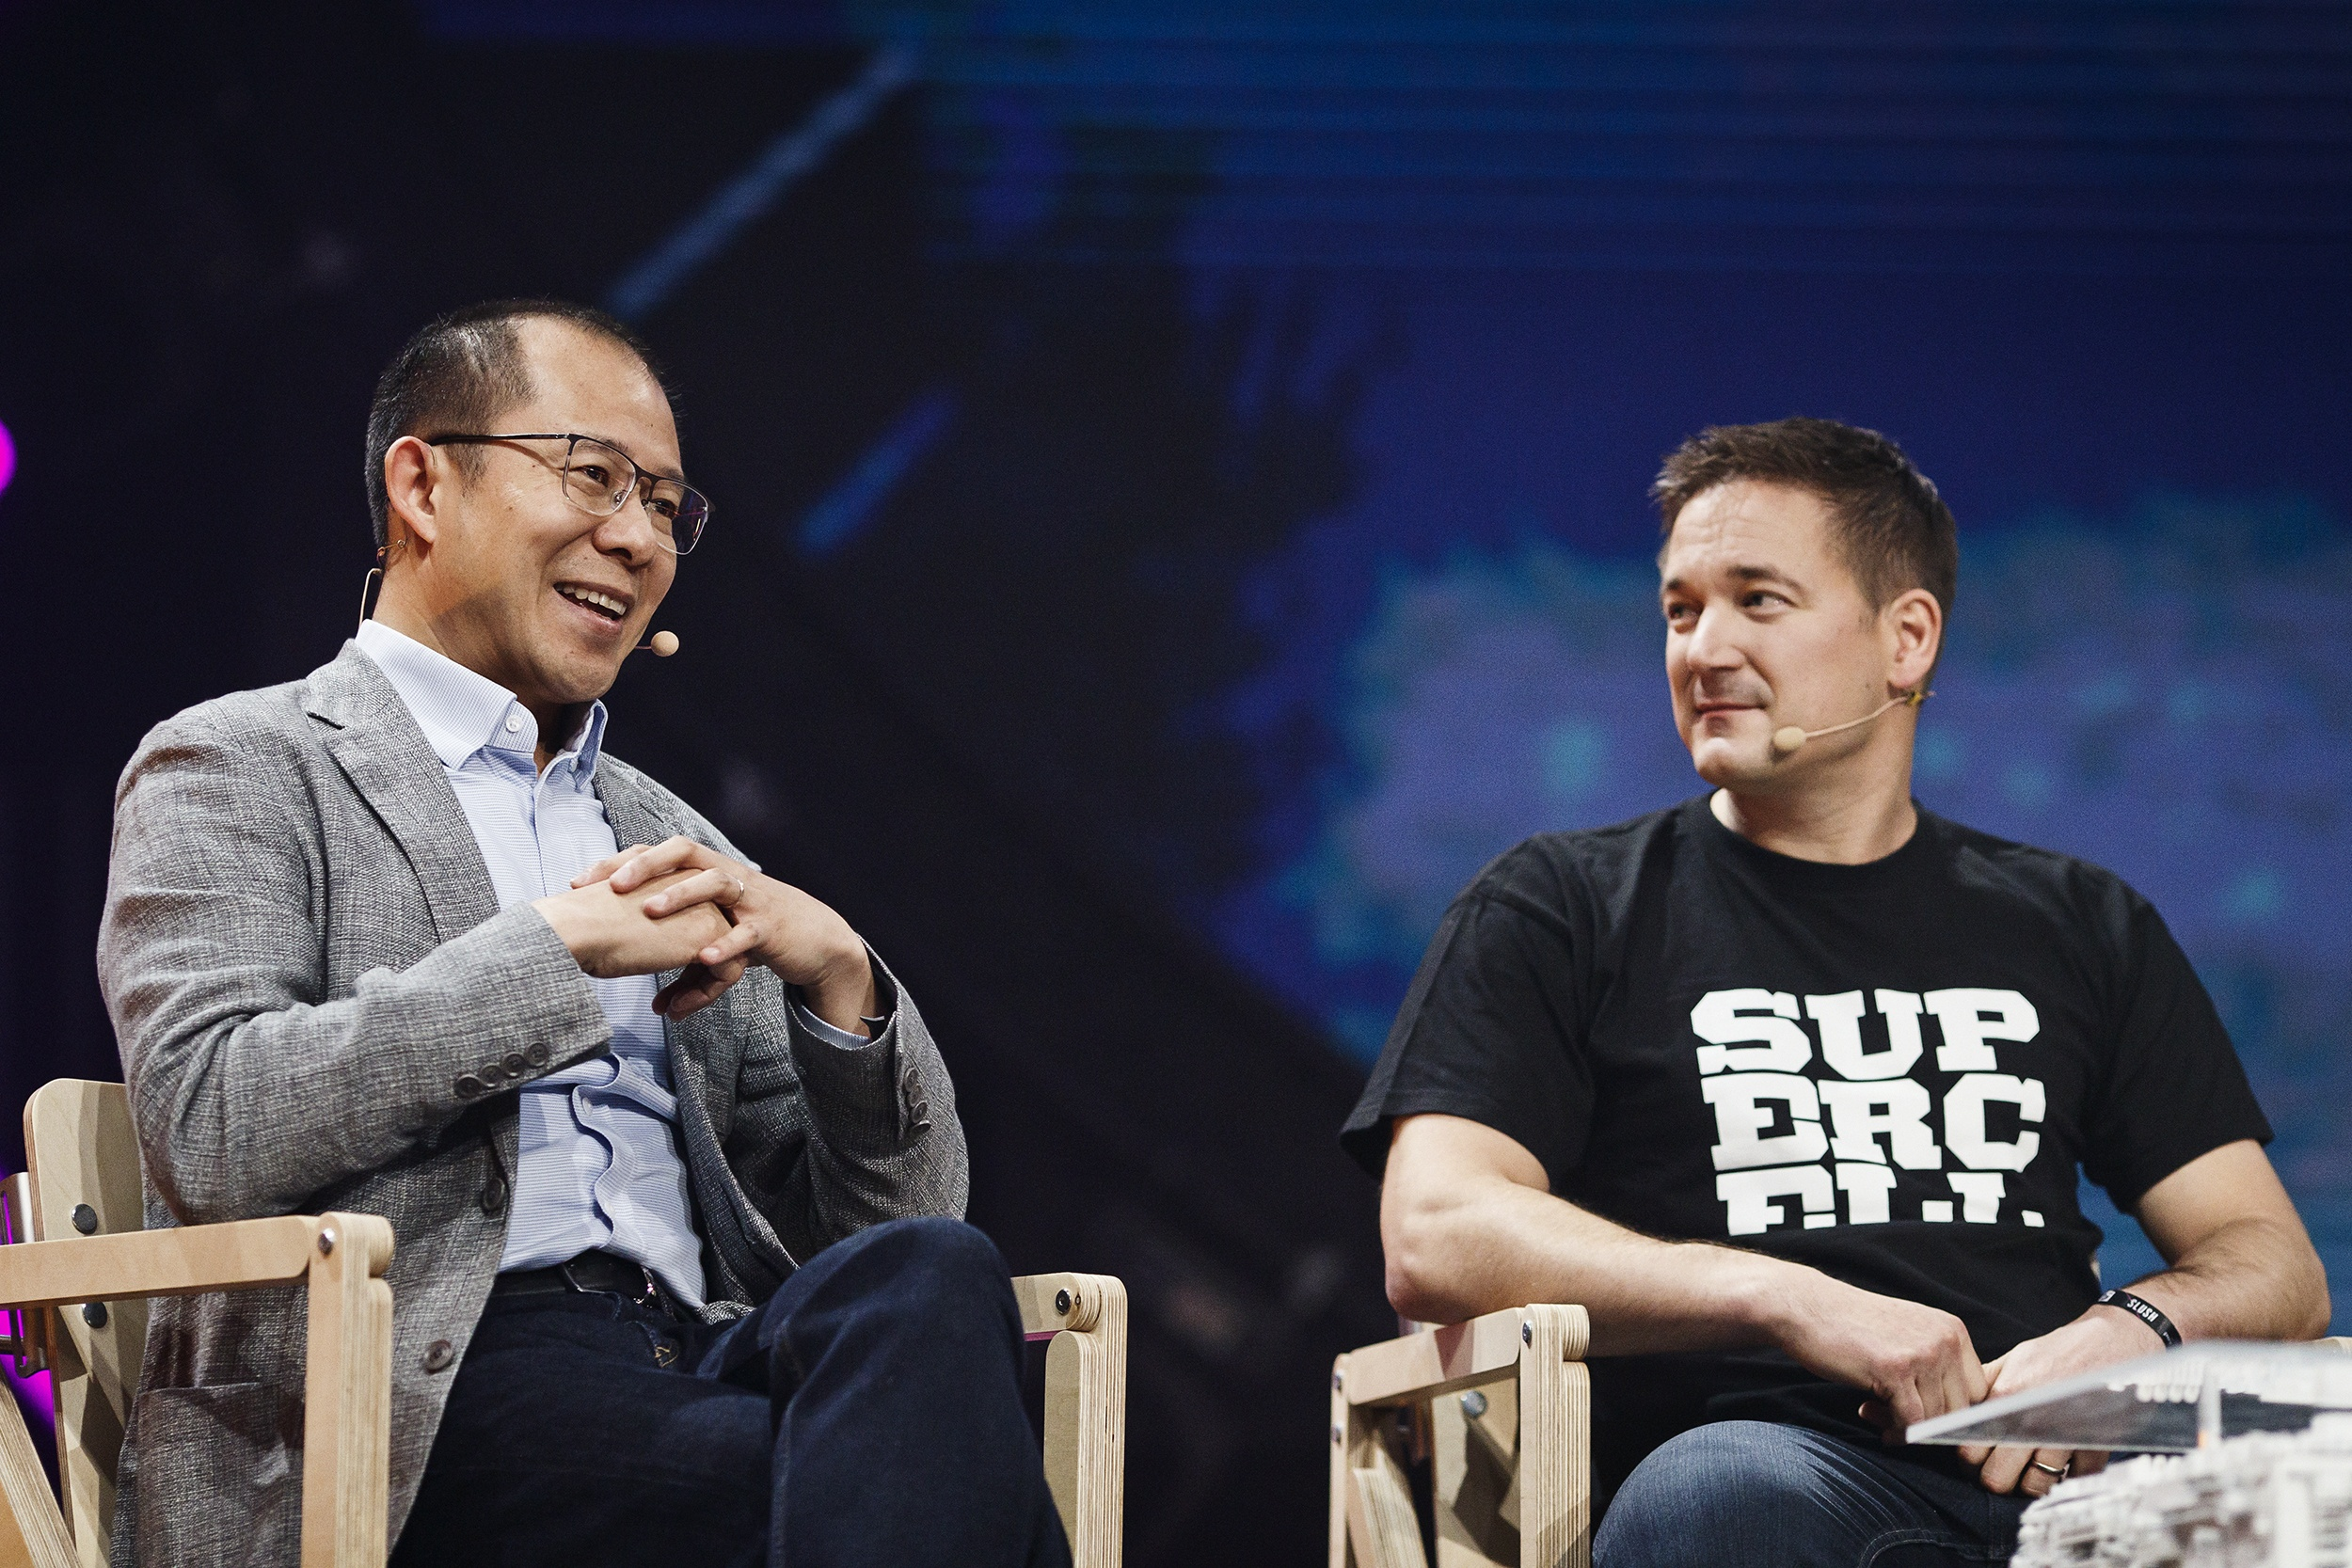 The discussion between president of Tencent Martin Lau and co-founder and CEO of Supercell Ilkka Paananen must've been one of the most anticipated meetings of the event. Lau complimented Finnish society and Supercell's willingness to share its success with the nation. Paananen, for his part, pointed out that Finland has a real opportunity to turn into a leading tech hub, not just in Europe but globally.